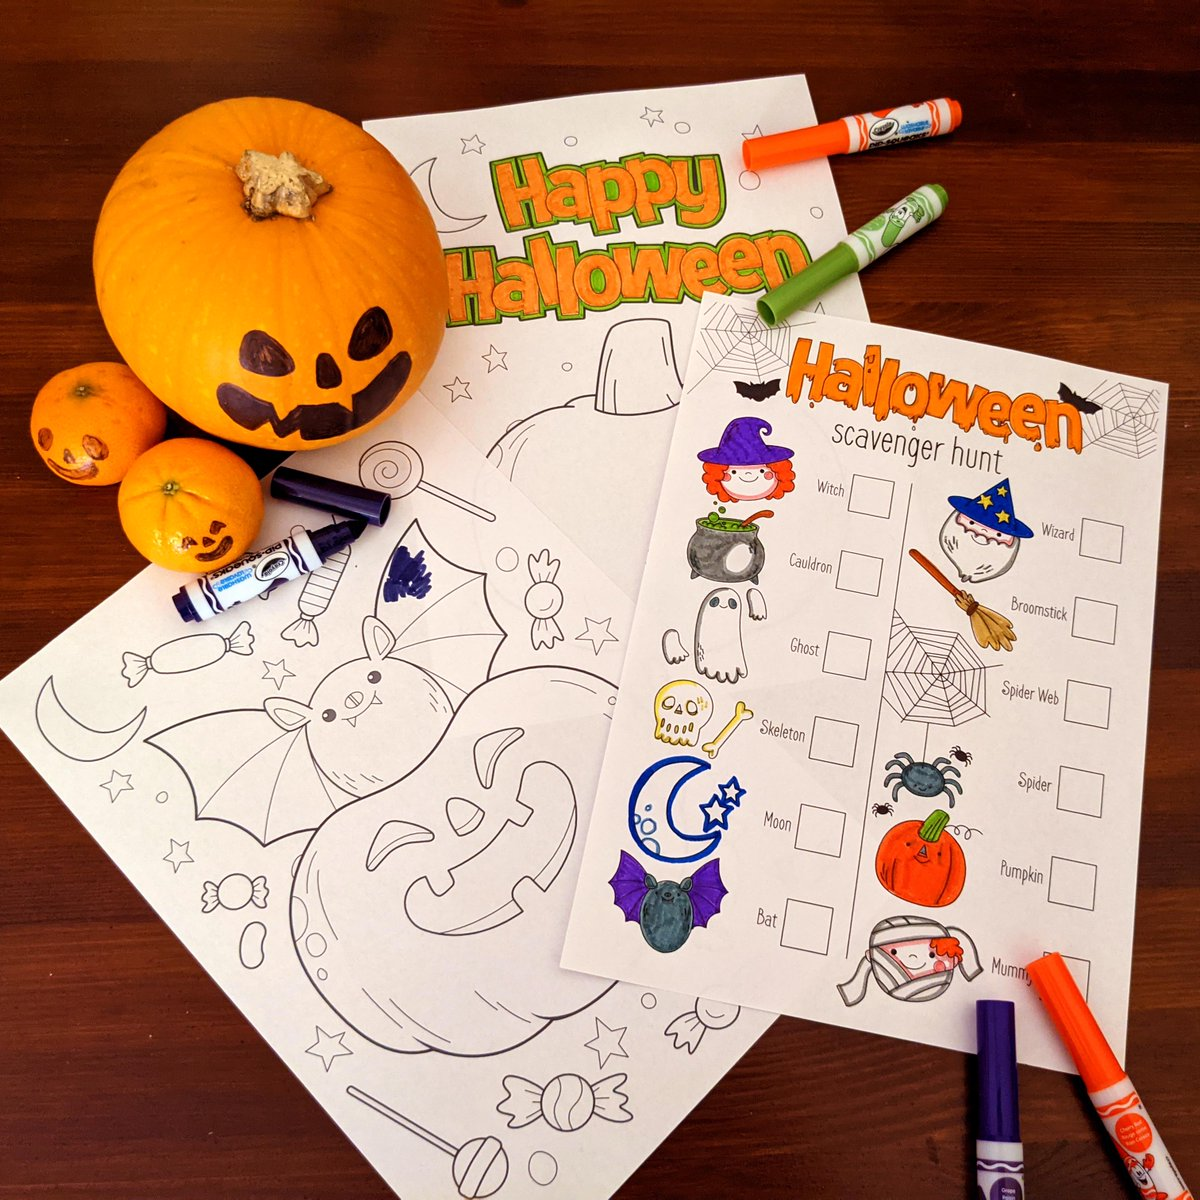 Get set for the spookiest season of them all with our free colouring in sheets, perfect for mini makers, big kids and adults alike!  Find everything you need: https://t.co/XxdV9DqsMD  #Halloween #FreeDownloads #Hobbycraft https://t.co/PkK8OgvfUP